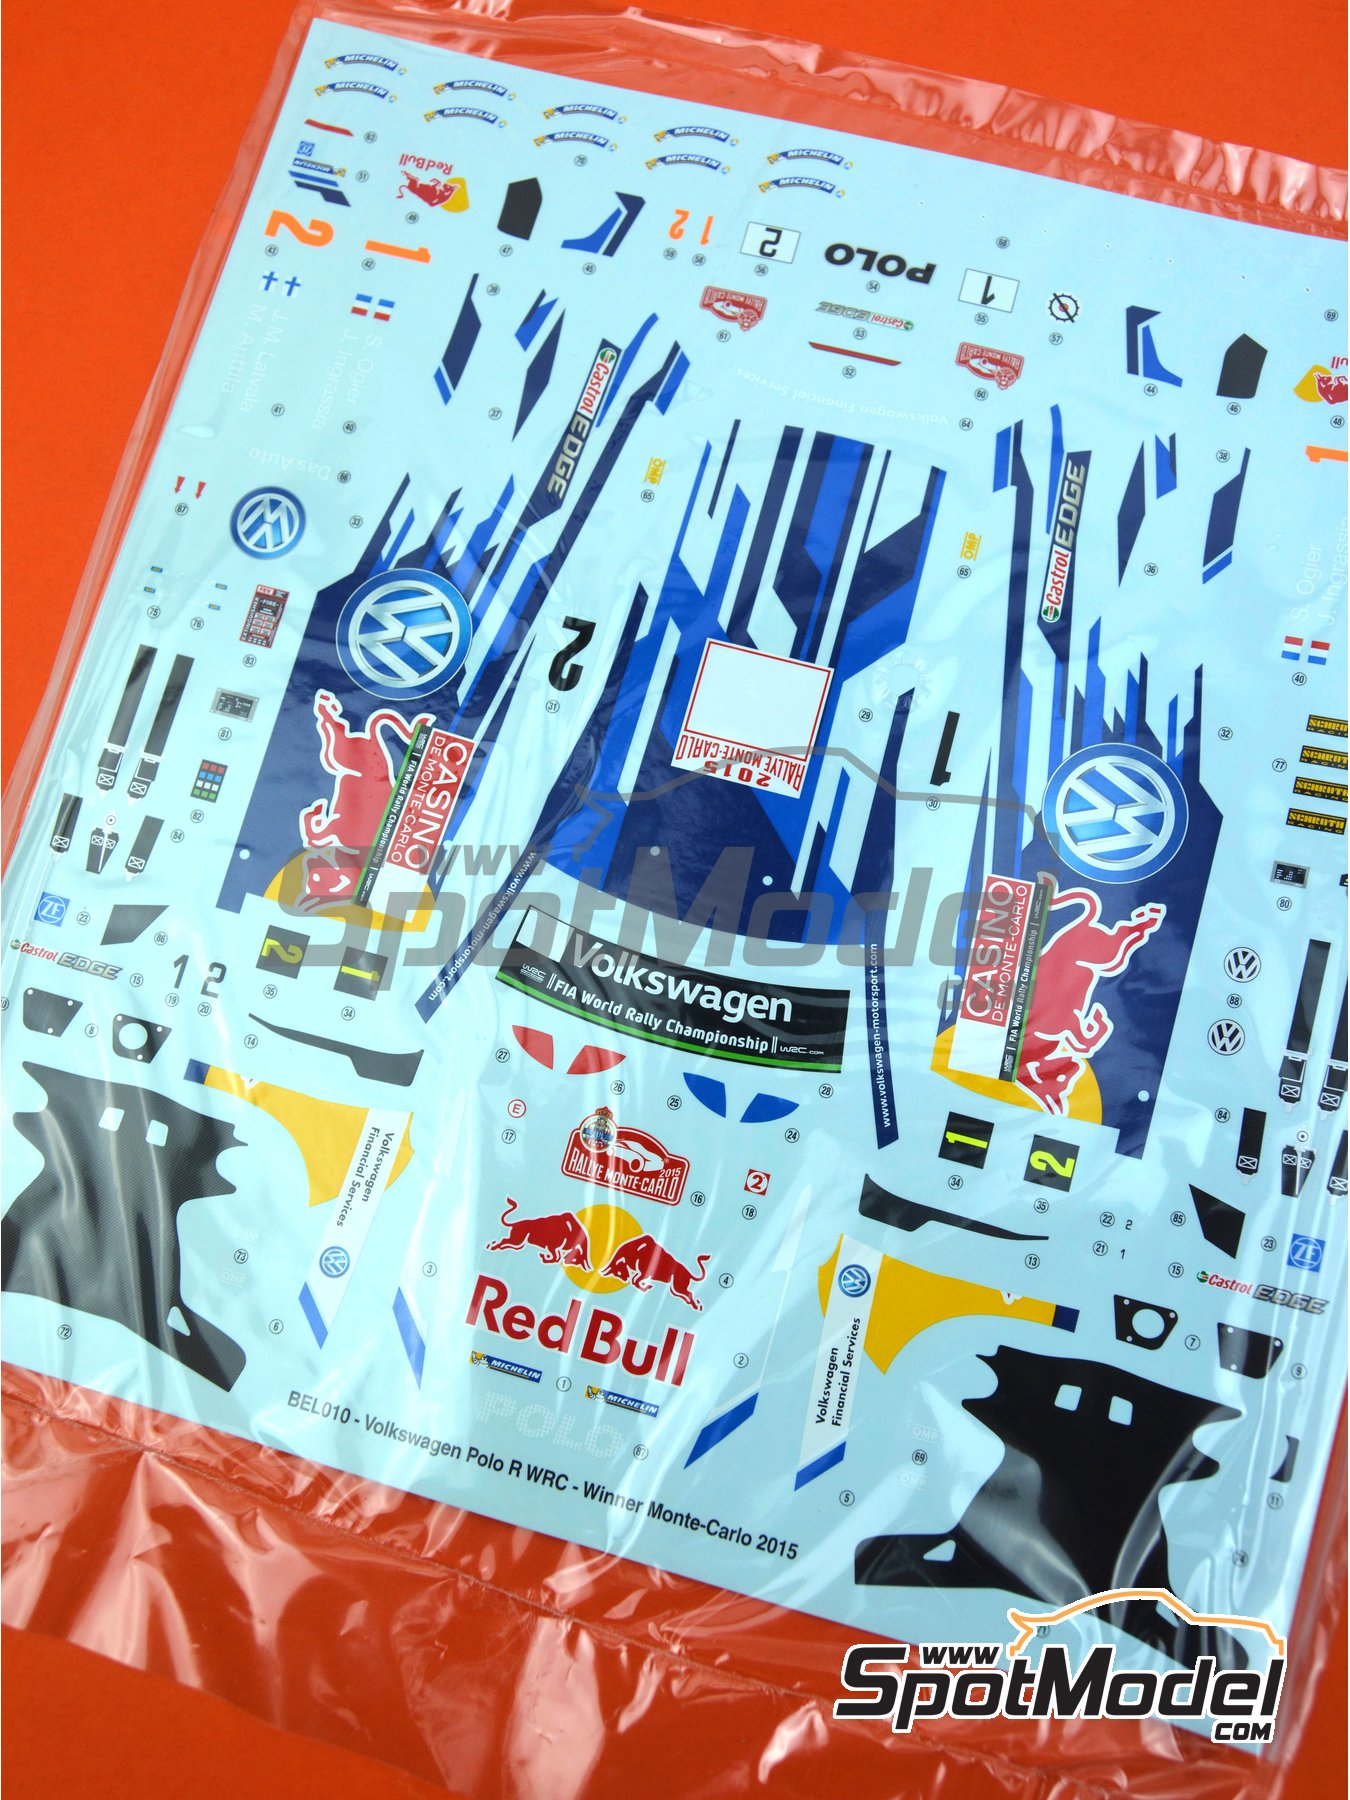 Volkswagen Polo R WRC: Decals | Spare part in 1/24 scale manufactured by Belkits (ref.BEL010-DECALS) image